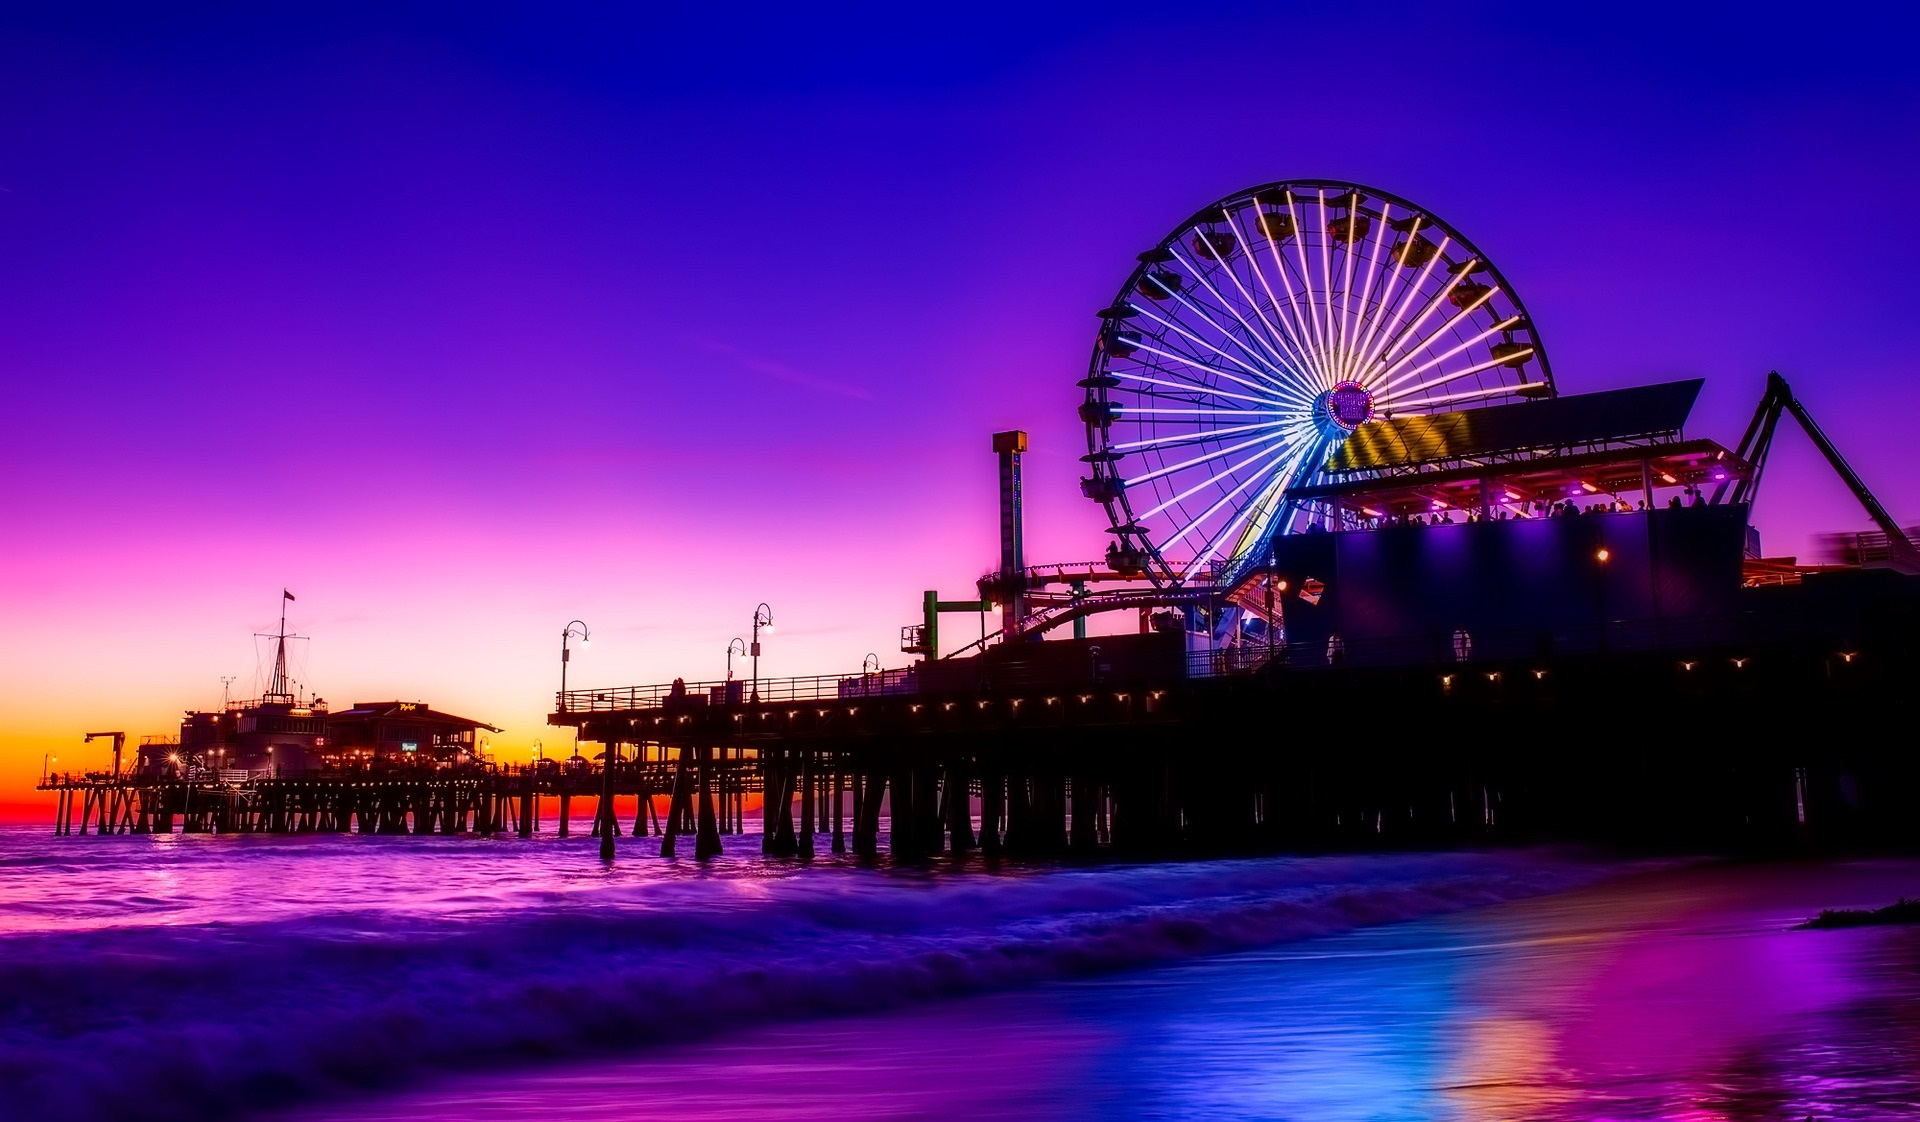 5 Things To Do On Santa Monica Pier And Other Activities